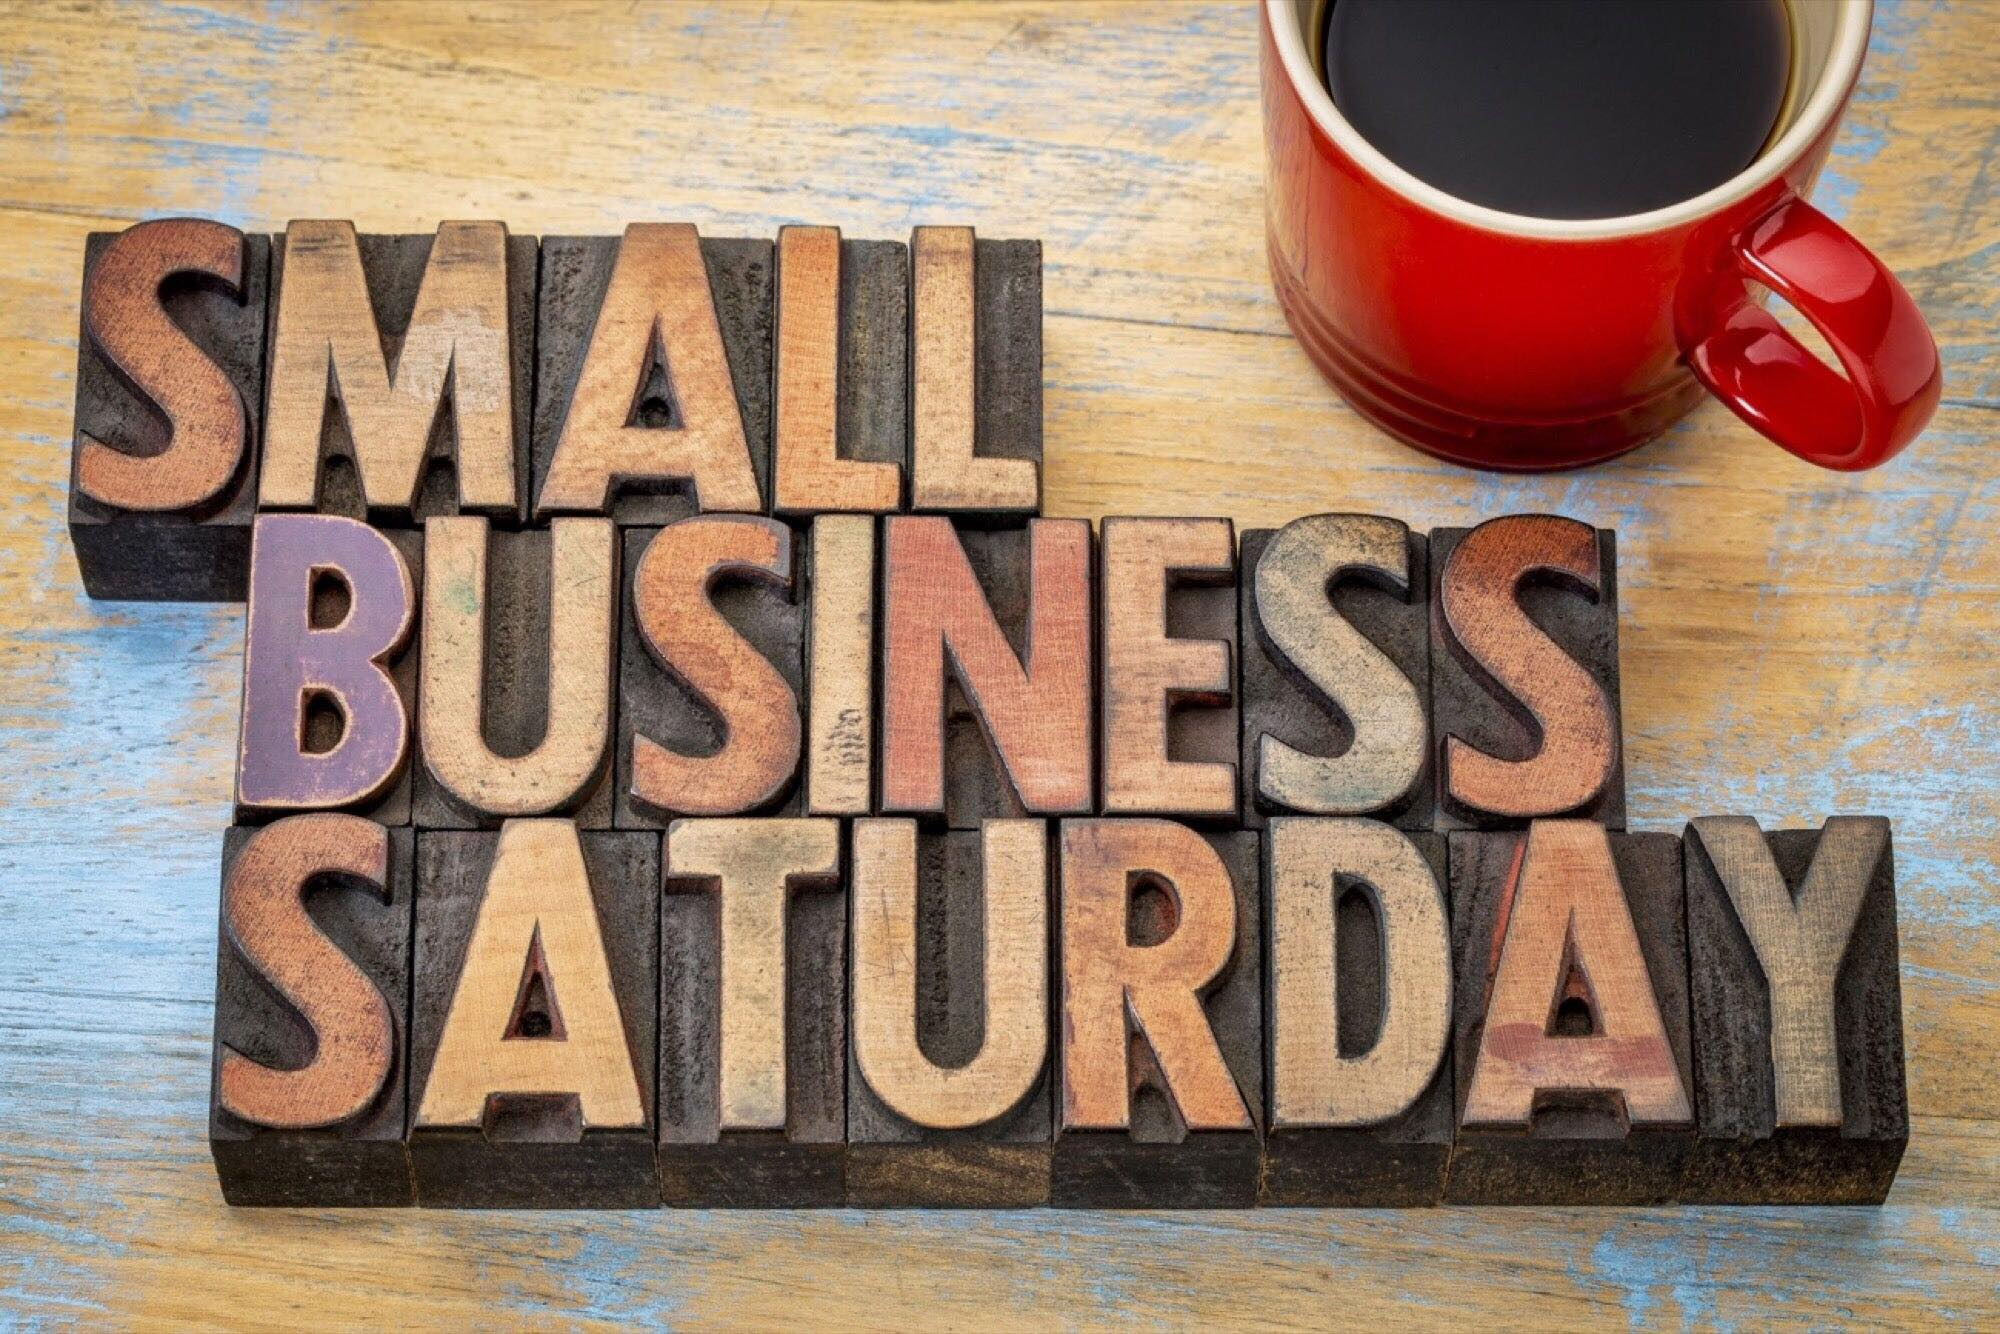 Nov. 30 – Small Business Saturday!